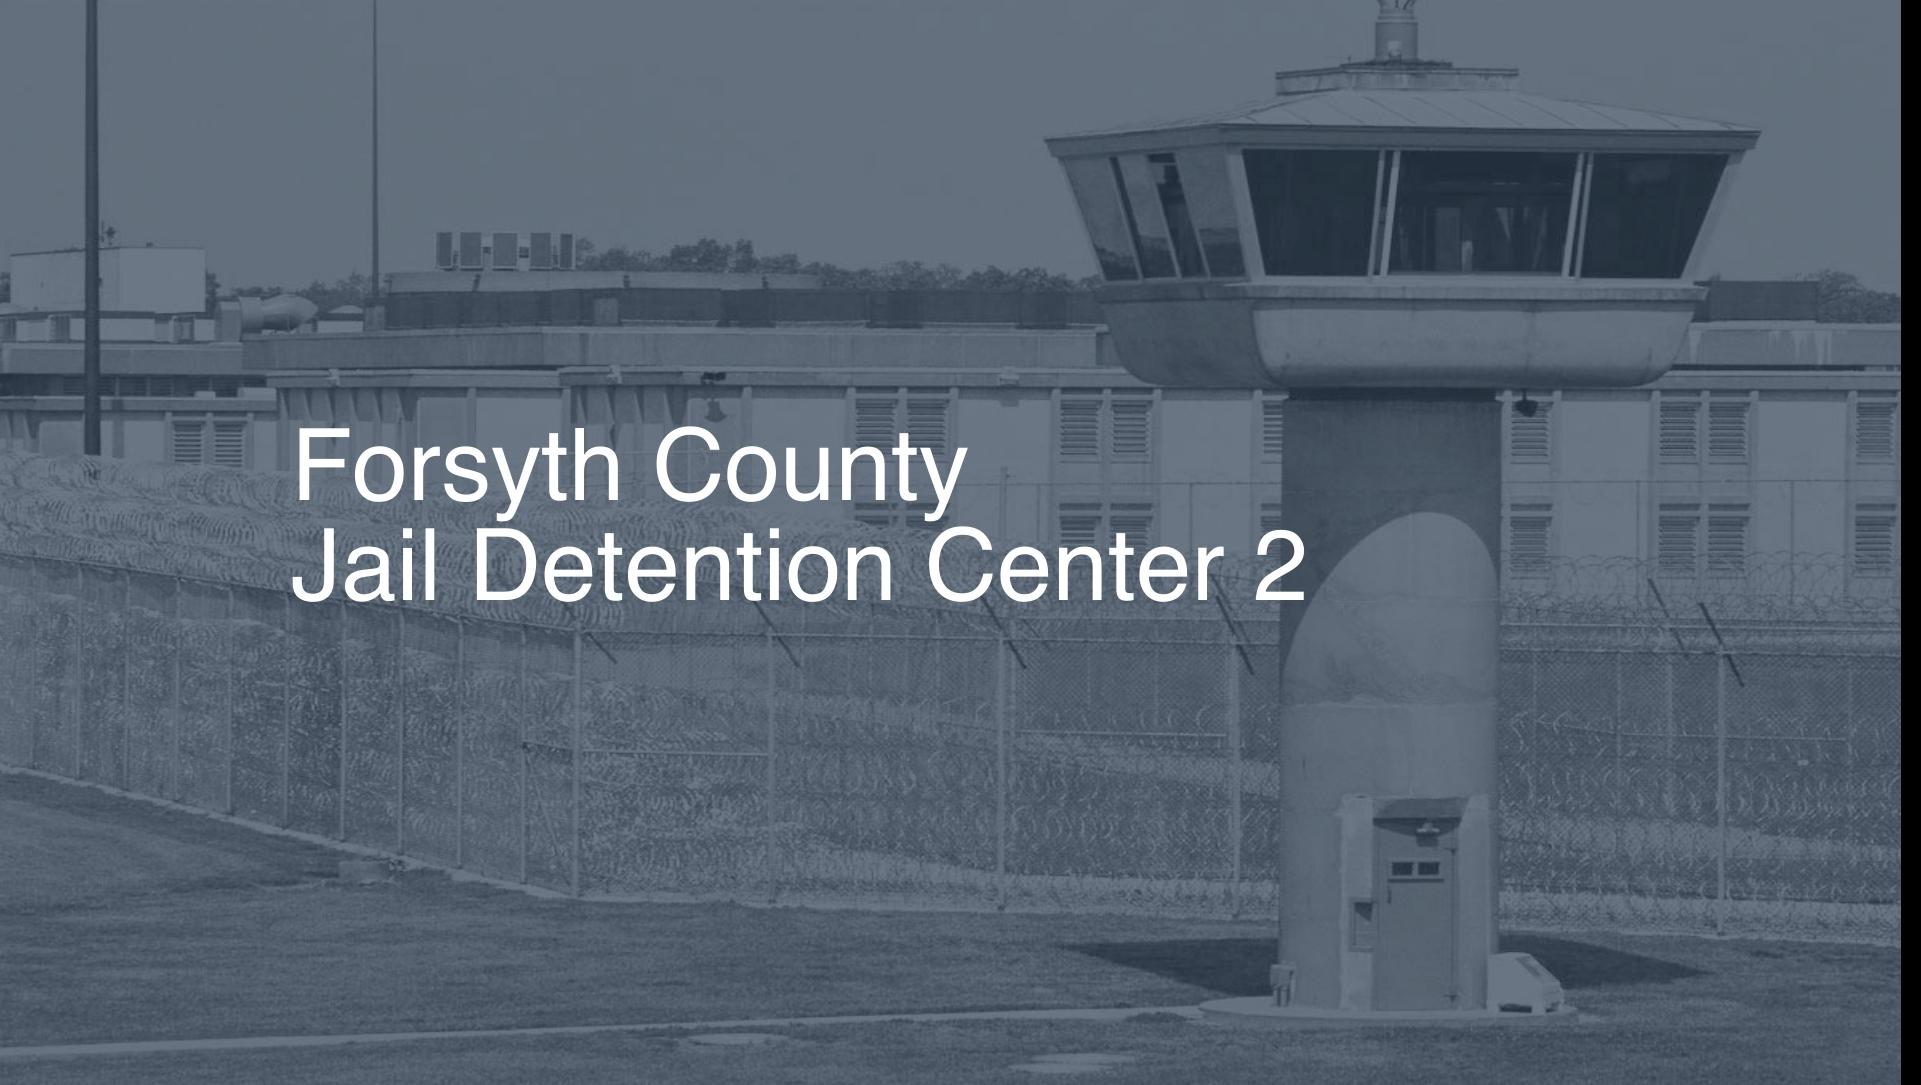 Forsyth County Jail & Detention Center Inmate Search, Lookup